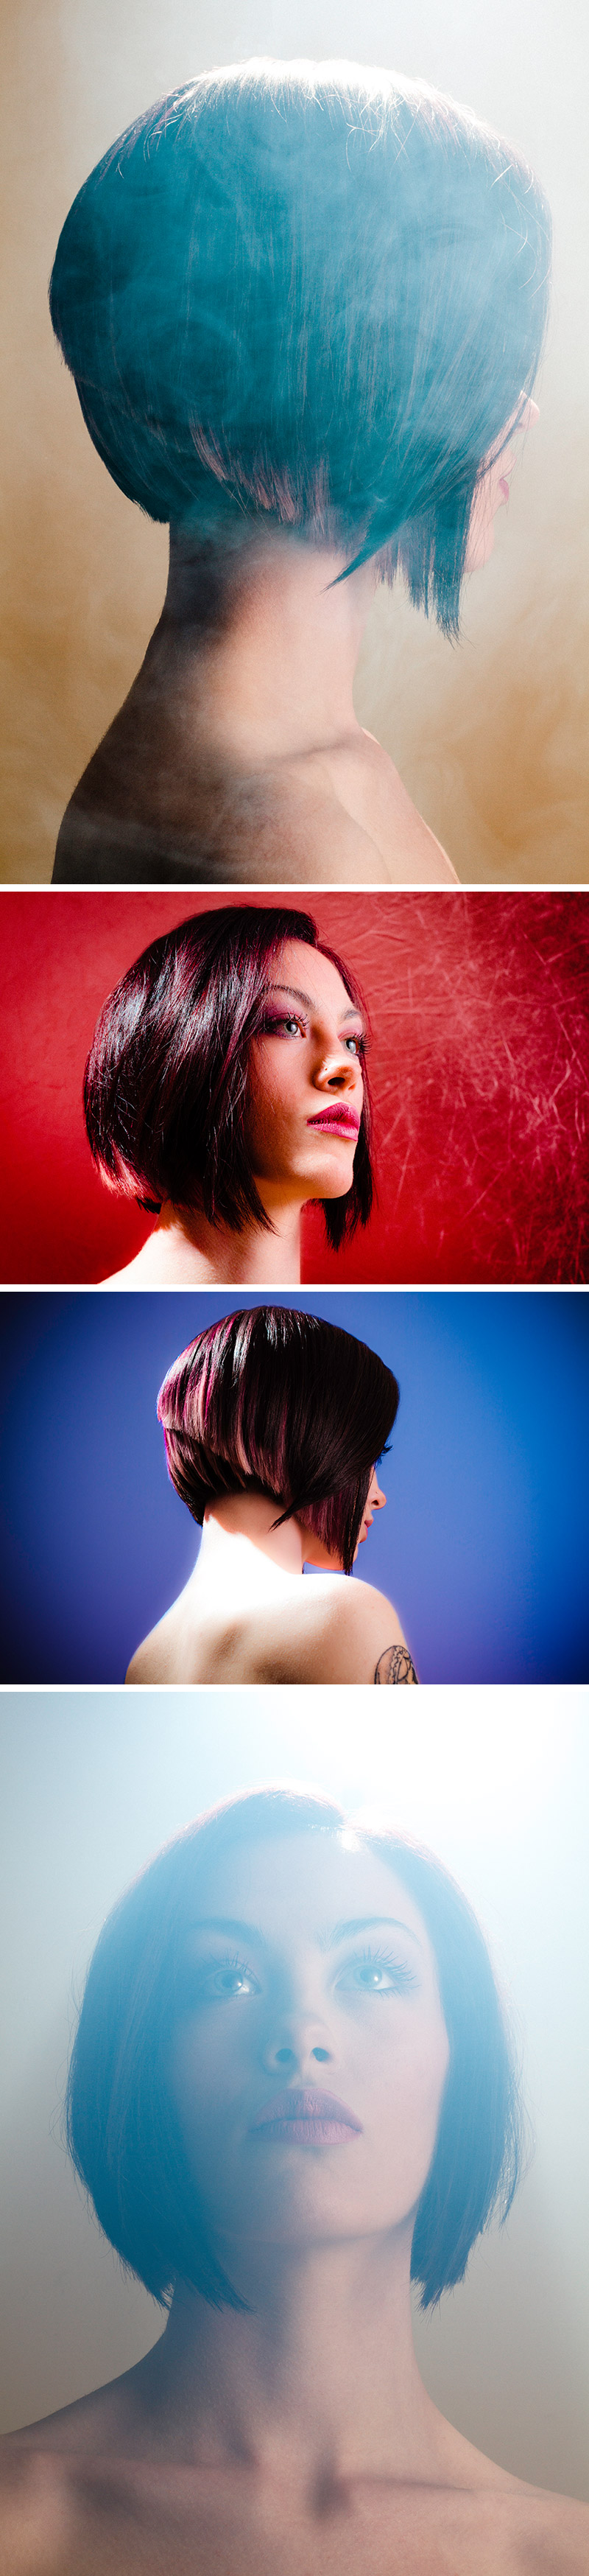 Jessica Cleaver cut and color